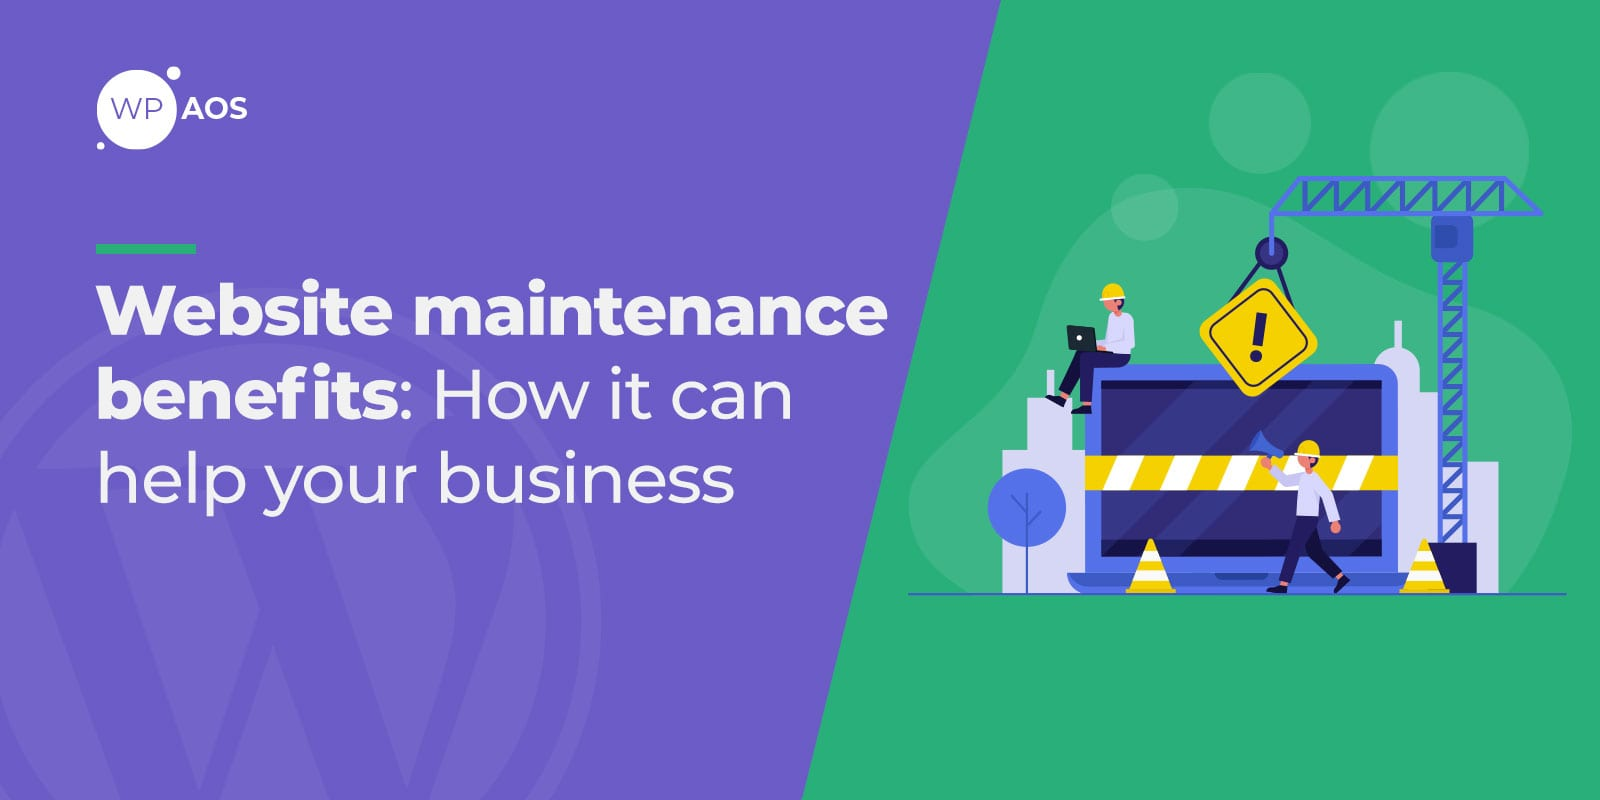 website maintenance benefits, WordPress service, wpaos